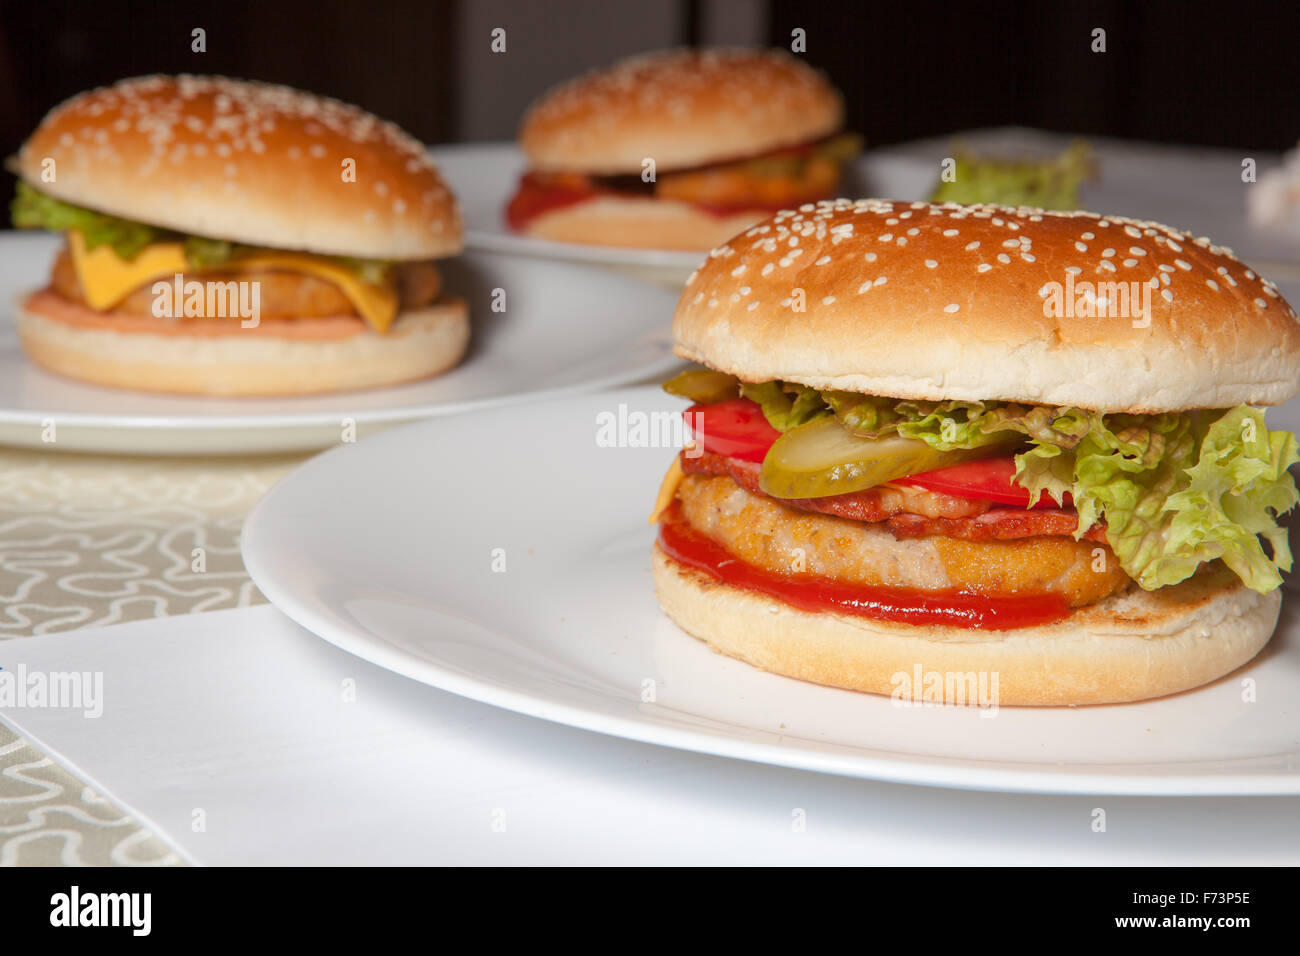 burger - Stock Image